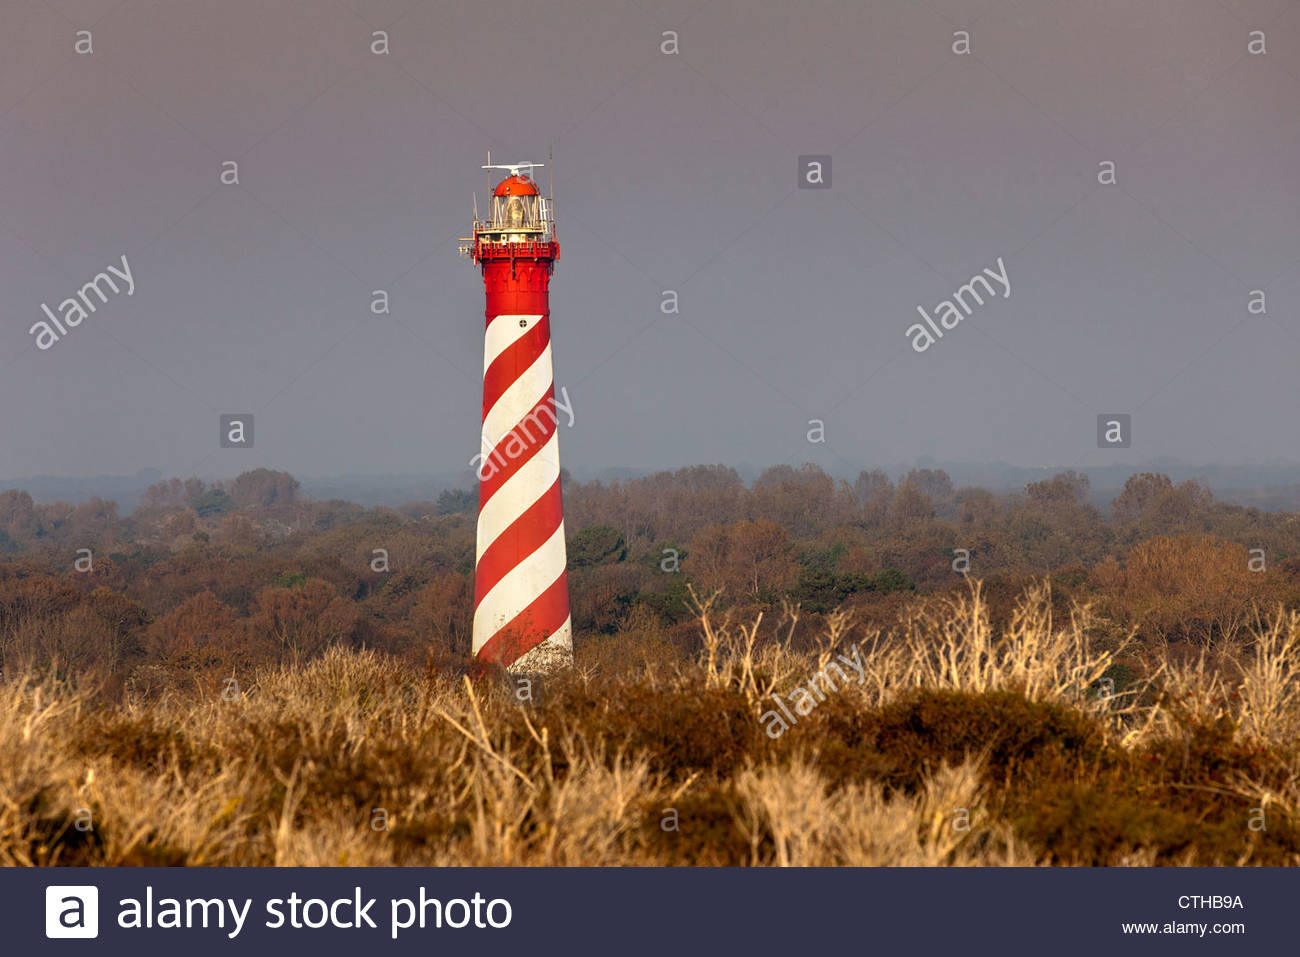 The Netherlands, Burgh Haamstede, Lighthouse. - Stock Image